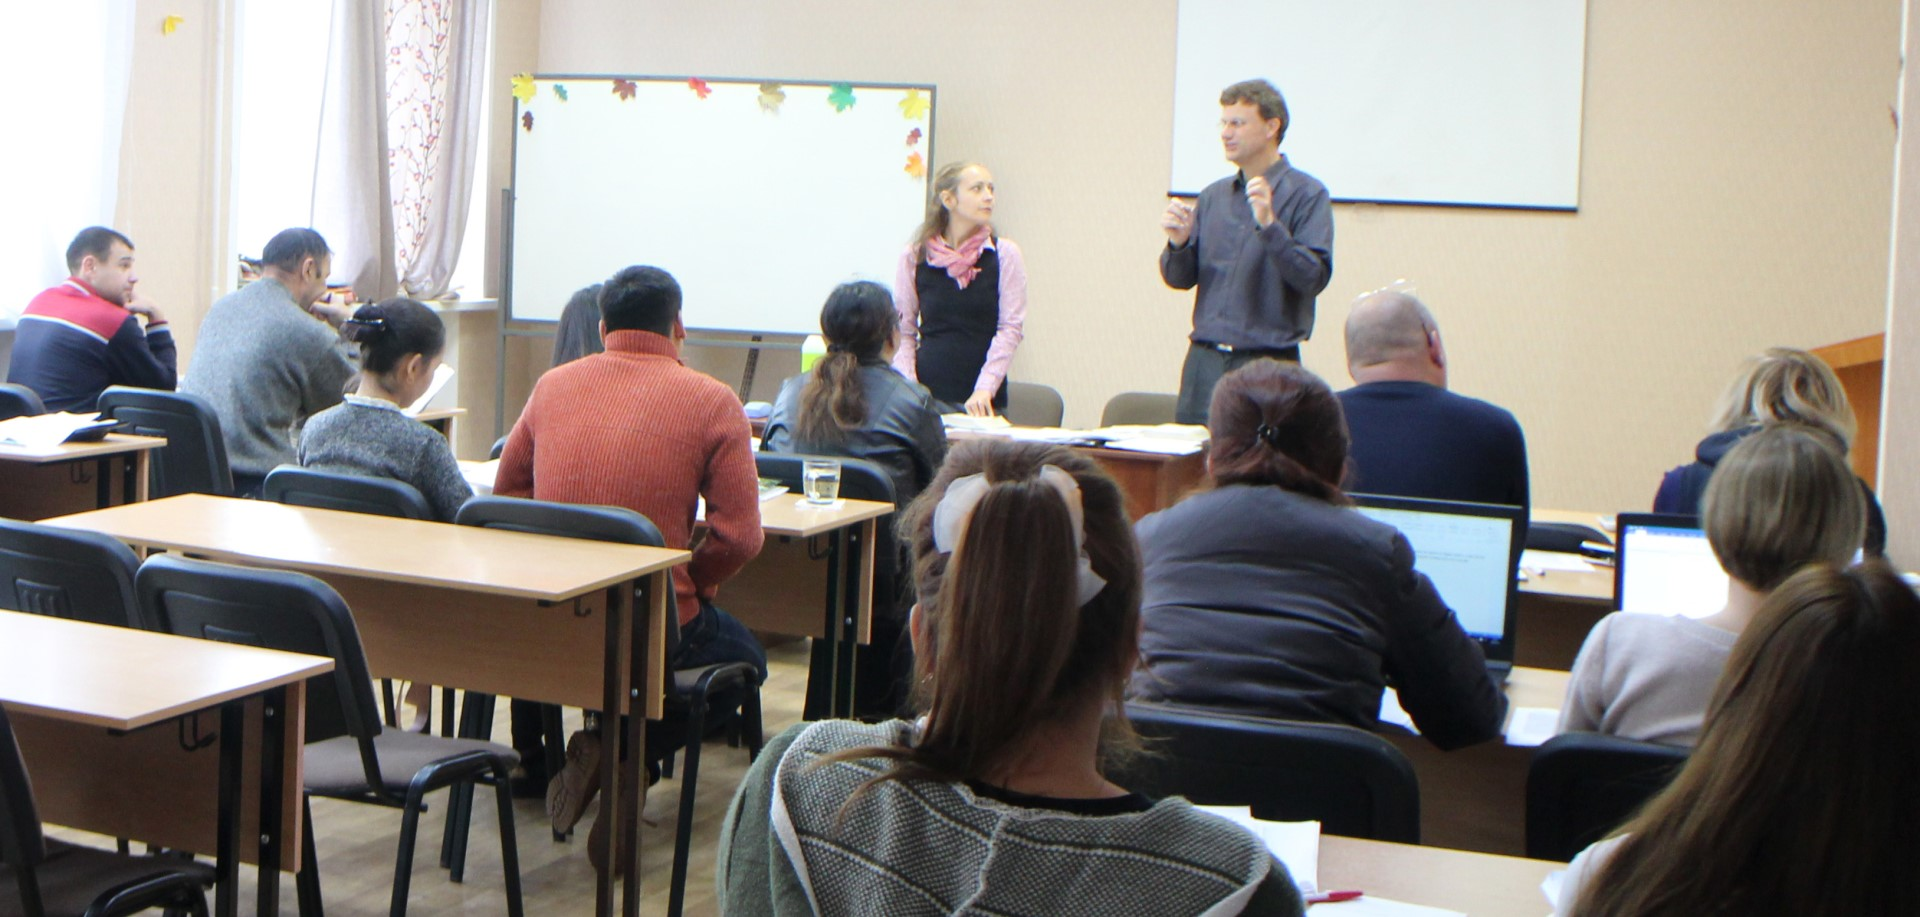 Tim McMahon teaching at the Eurasian Bible Mission College in Kazan Tatarstan, Russia